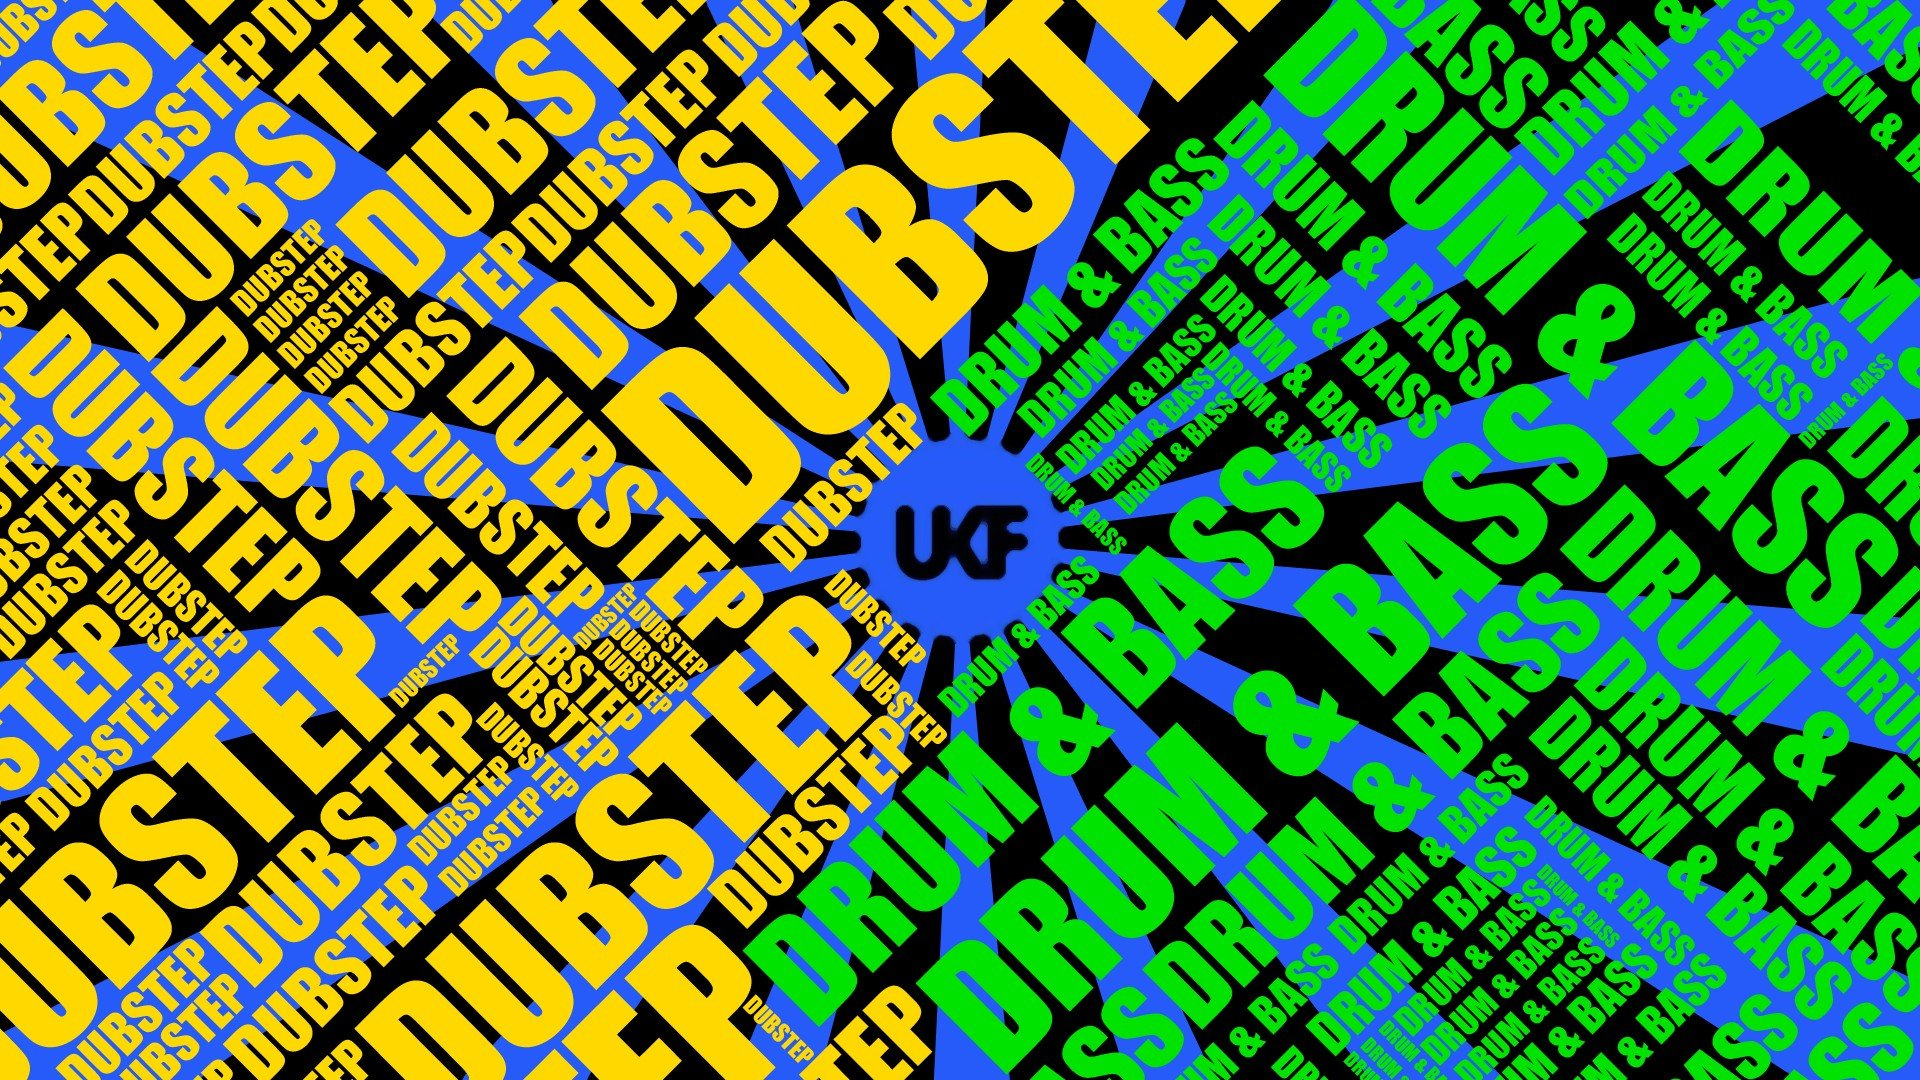 Music Multicolor Typography Dubstep Drum And Bass Wallpaper